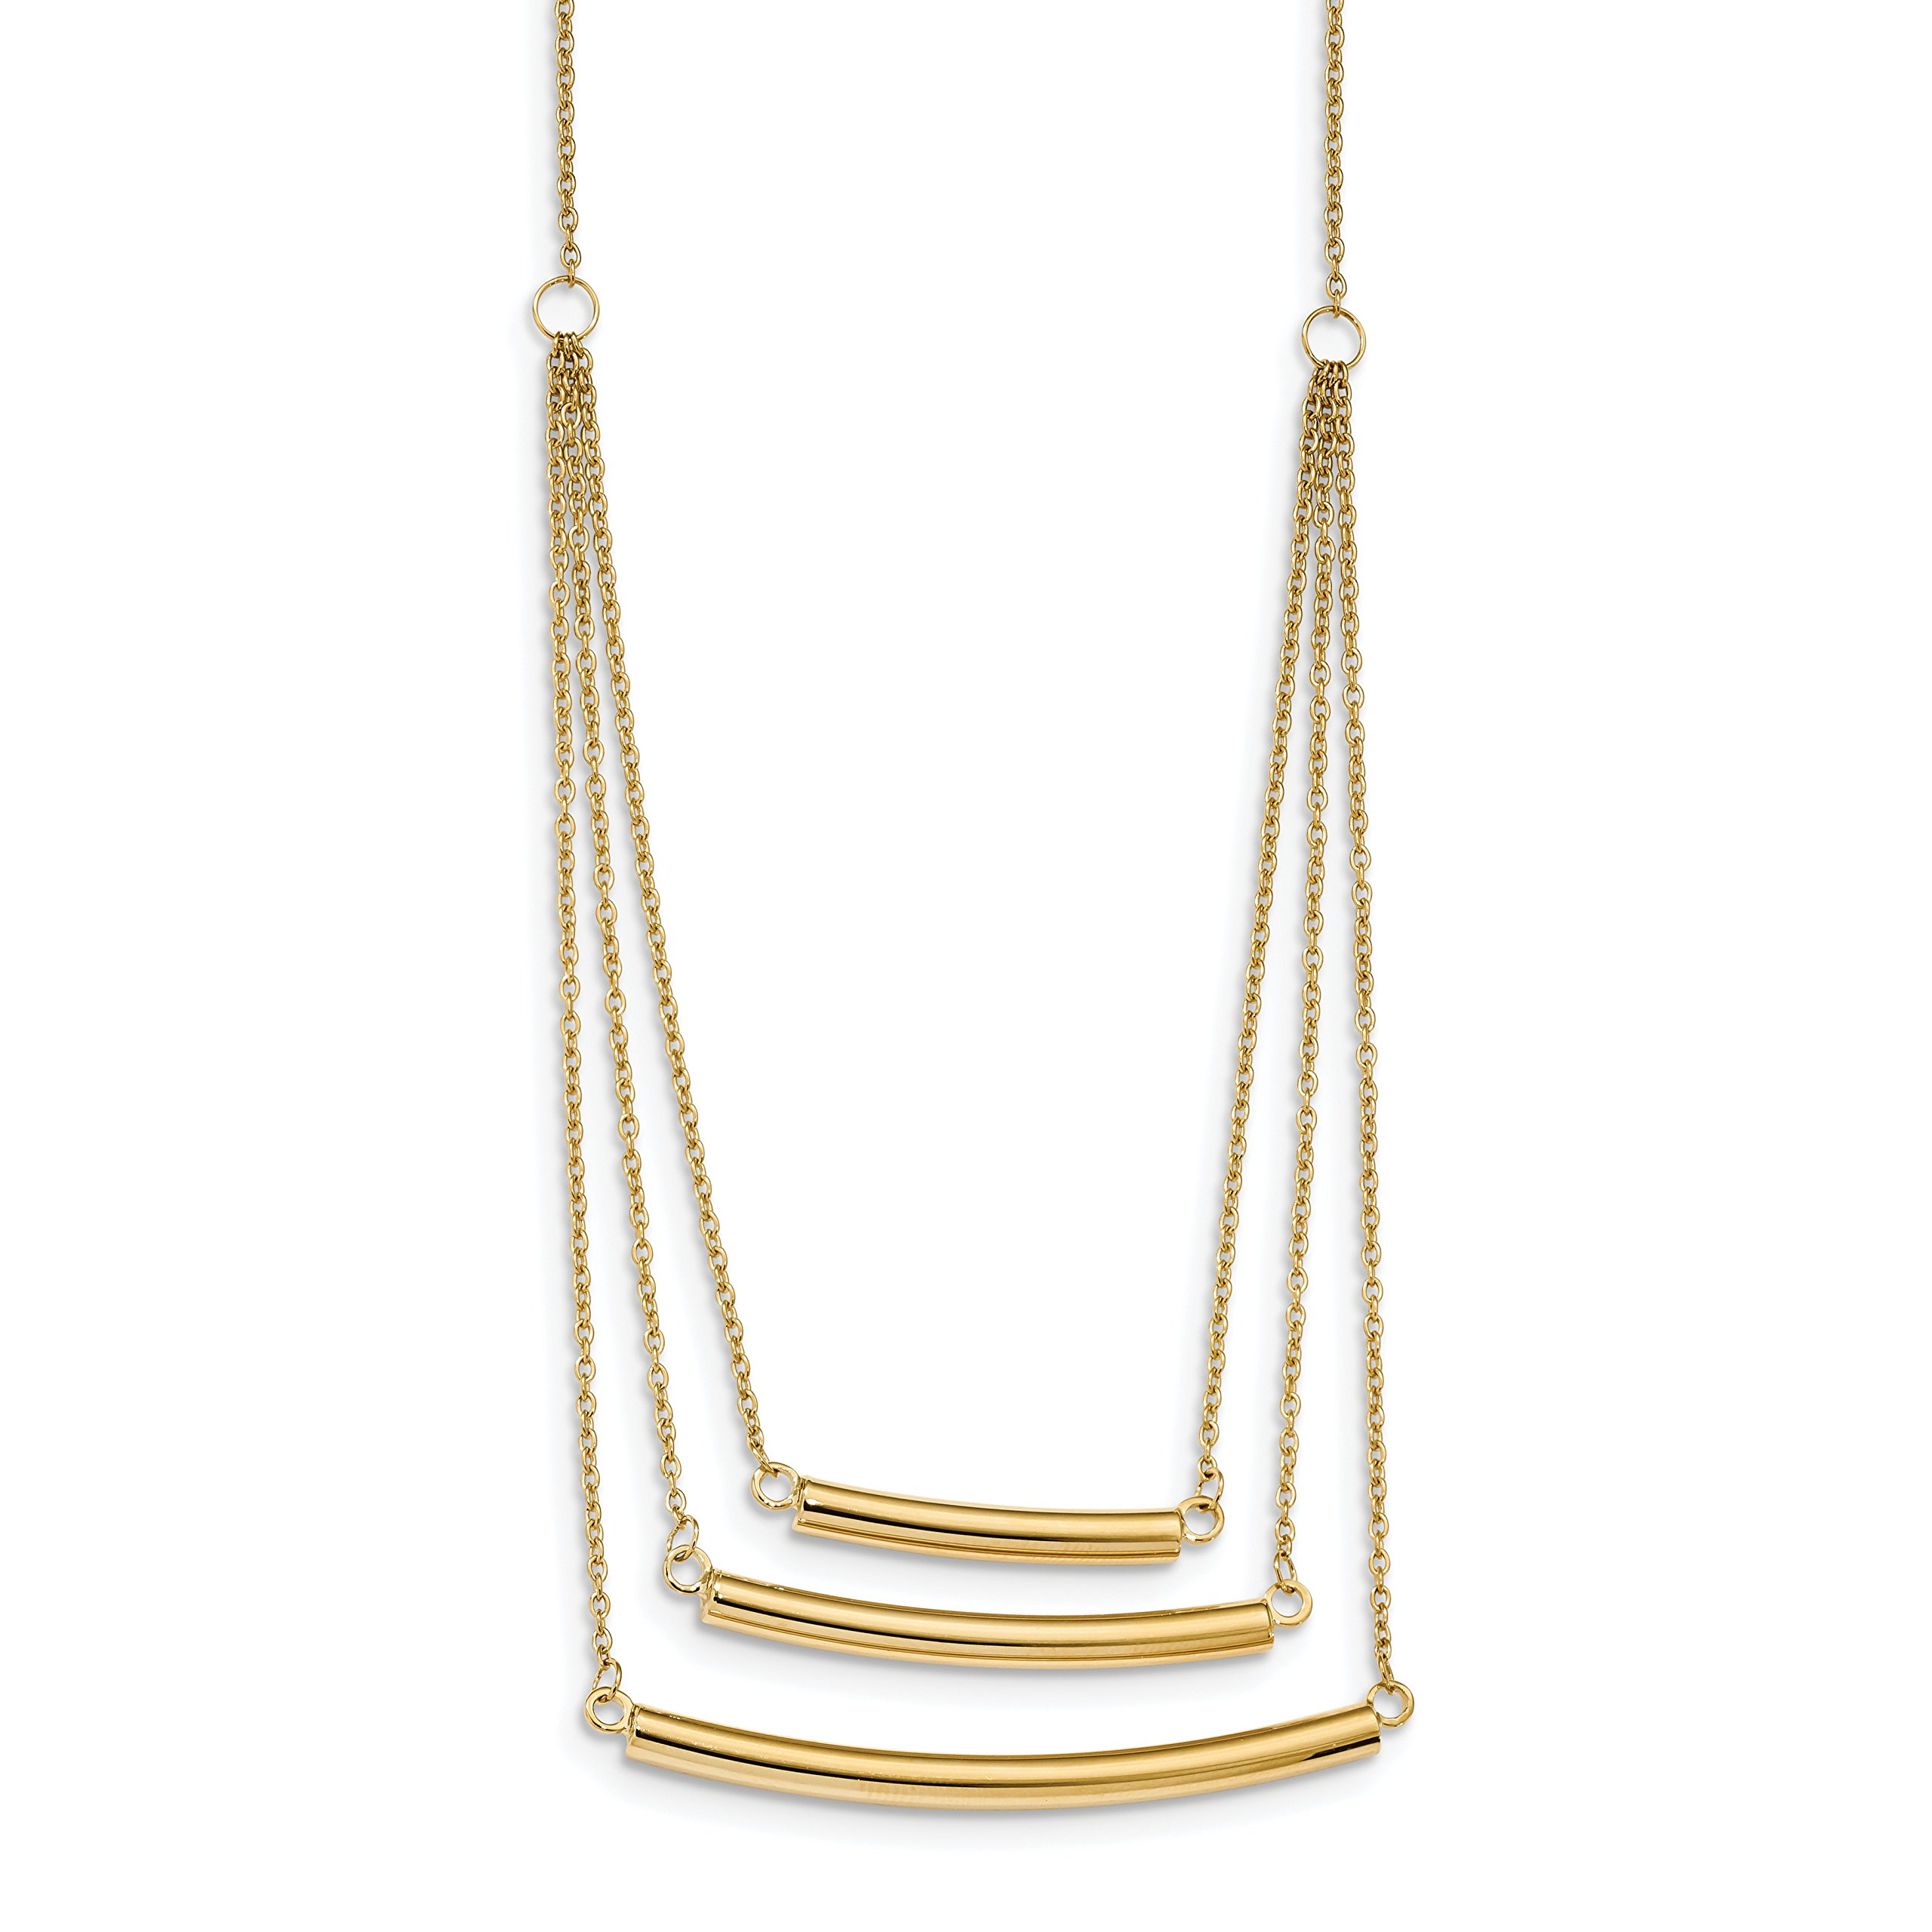 ICE CARATS 14k Yellow Gold 3 Strand Bar Chain Necklace Multi-str Fancy Fine Jewelry Gift Set For Women Heart